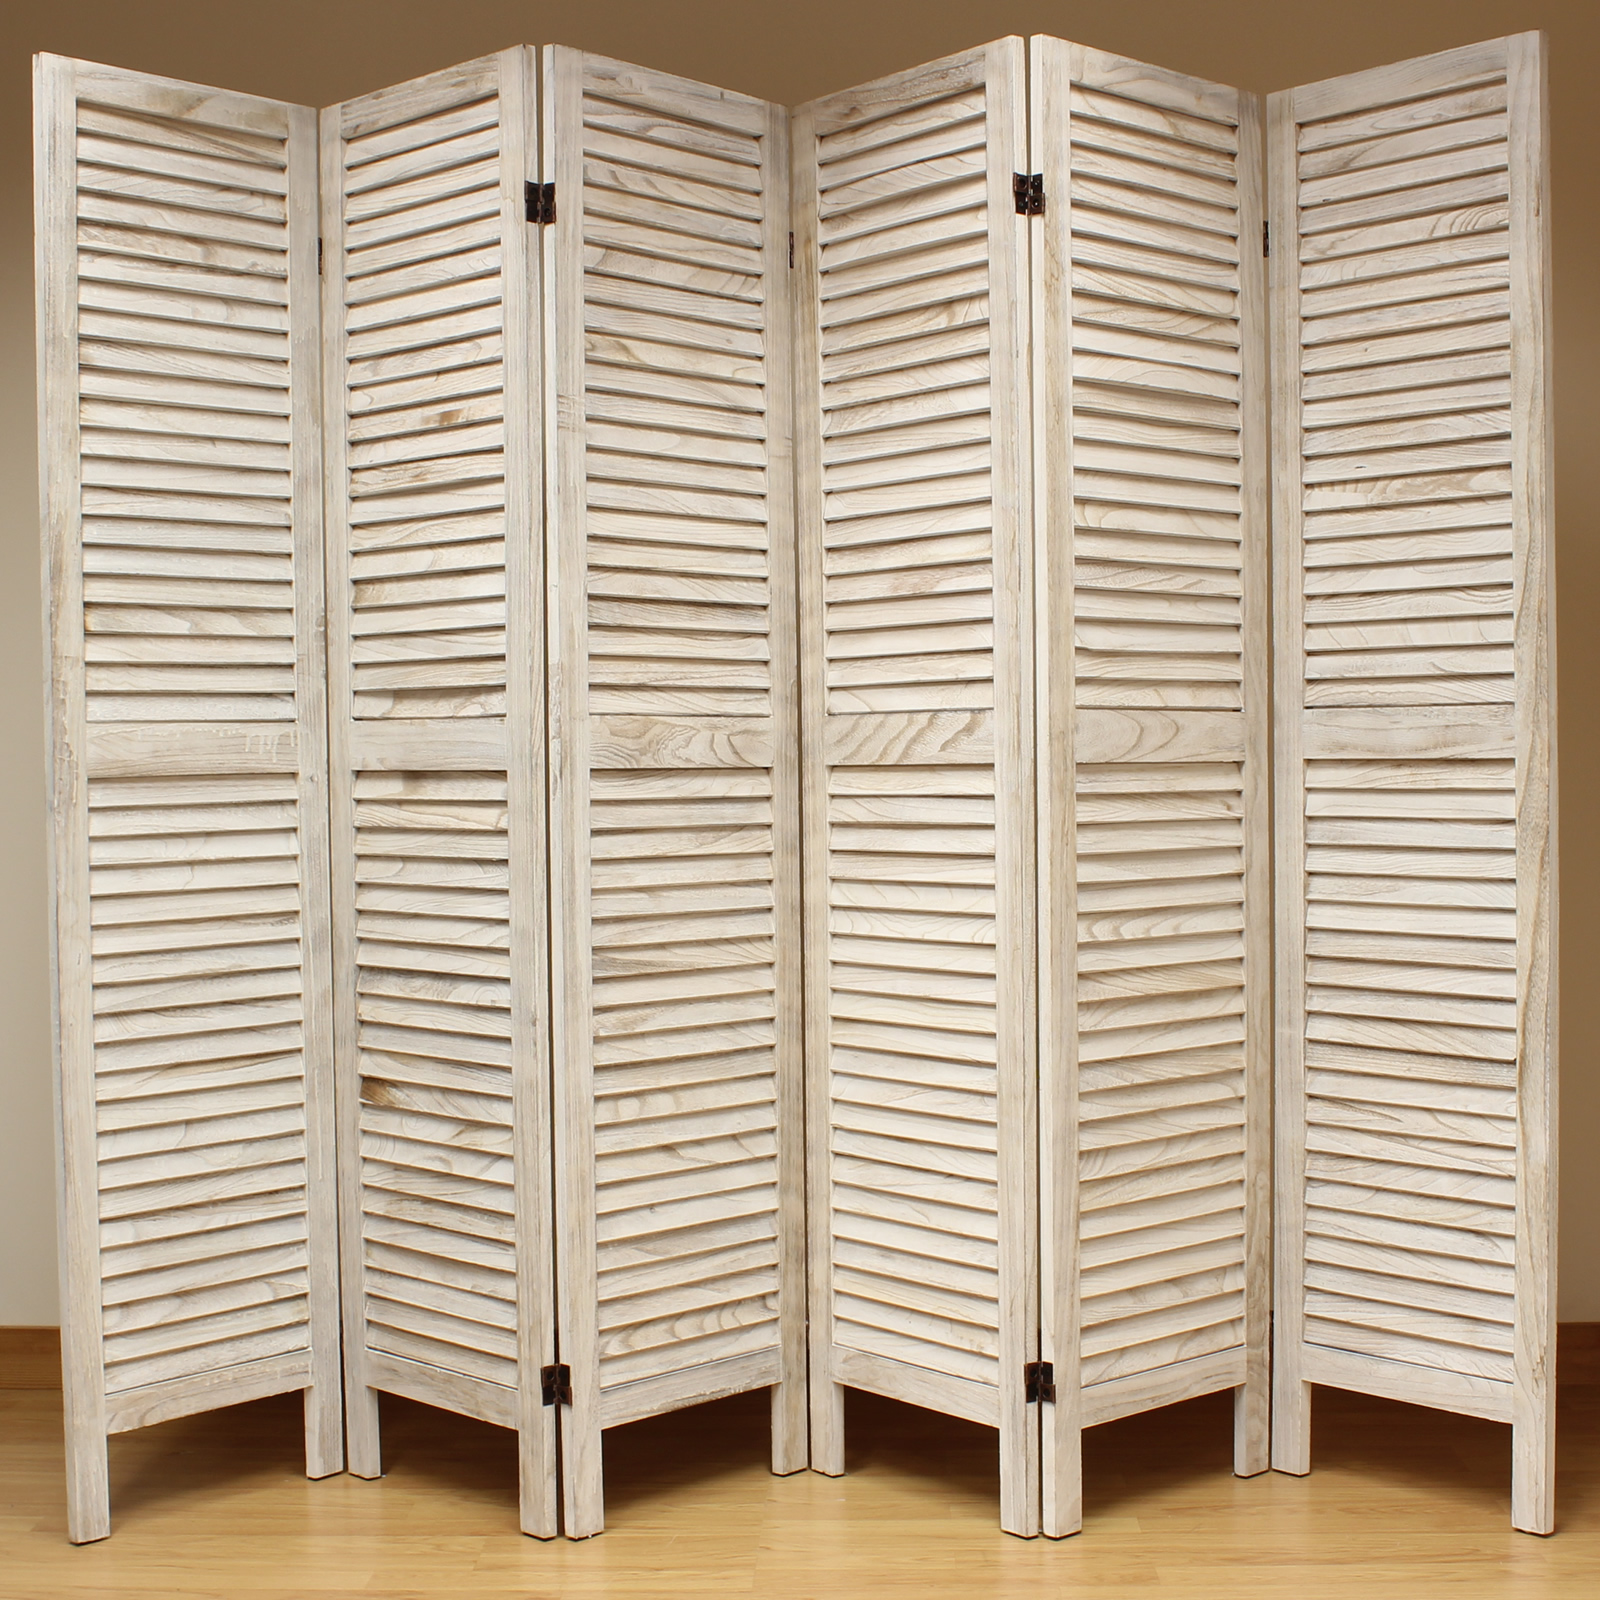 Cream 6 Panel Wooden Slat Room Divider Home Privacy Screen Separator Partitio